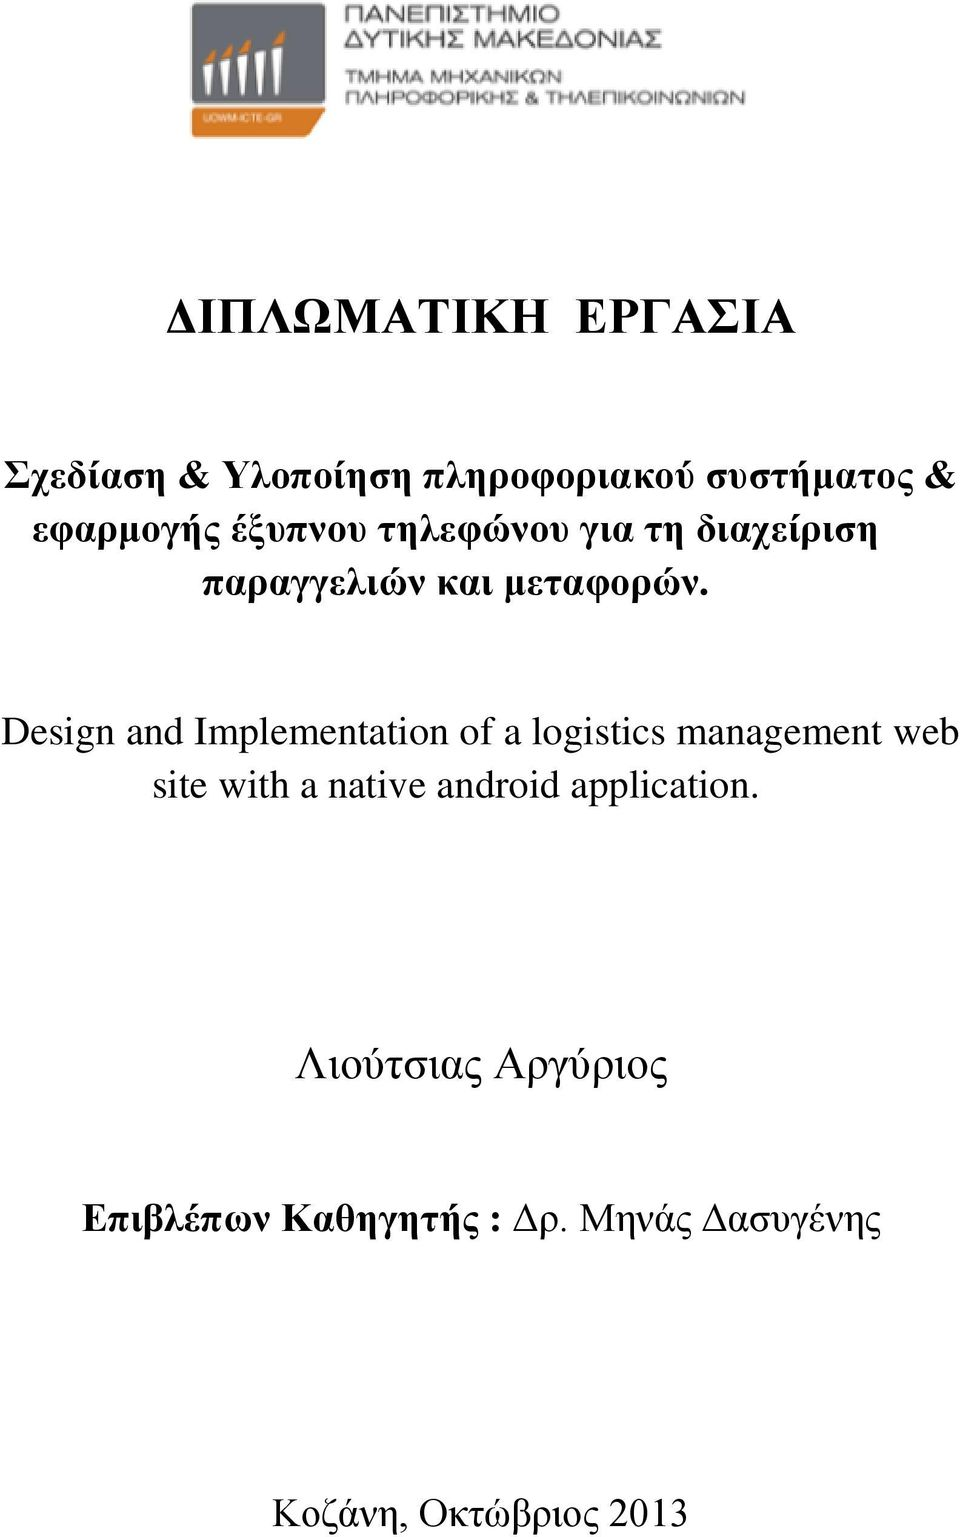 Design and Implementation of a logistics management web site with a native